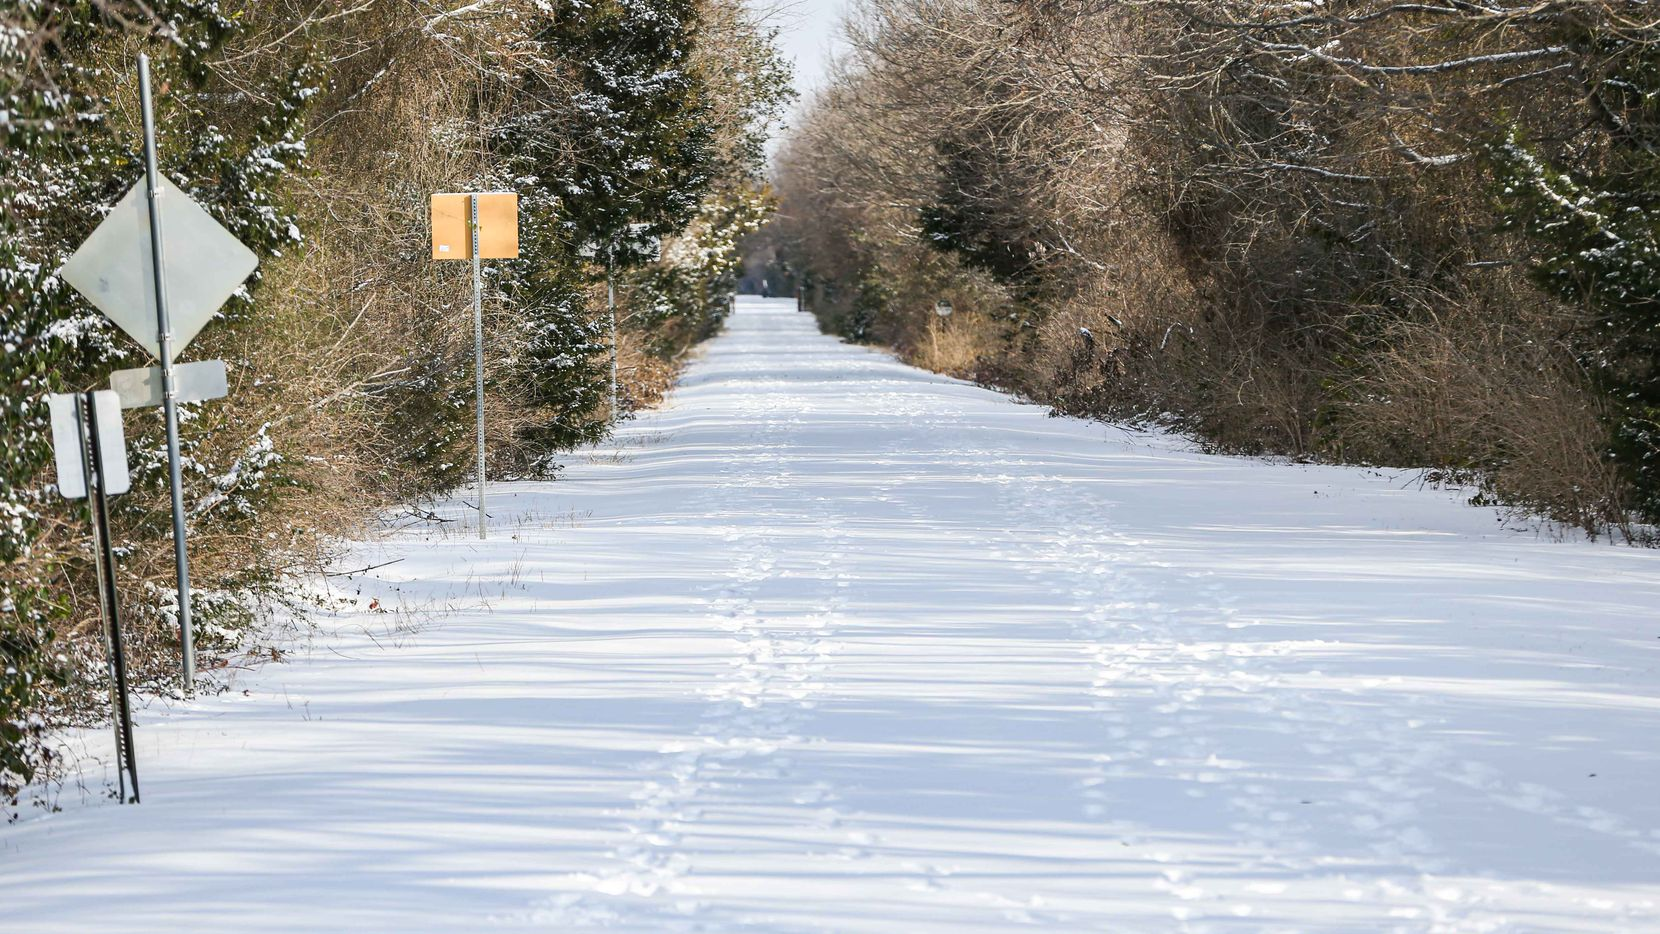 The Santa Fe Trail near Garland Rd covered in snow as a winter storm brings freezing temperatures to North Texas on Feb. 15, 2021, in Dallas.